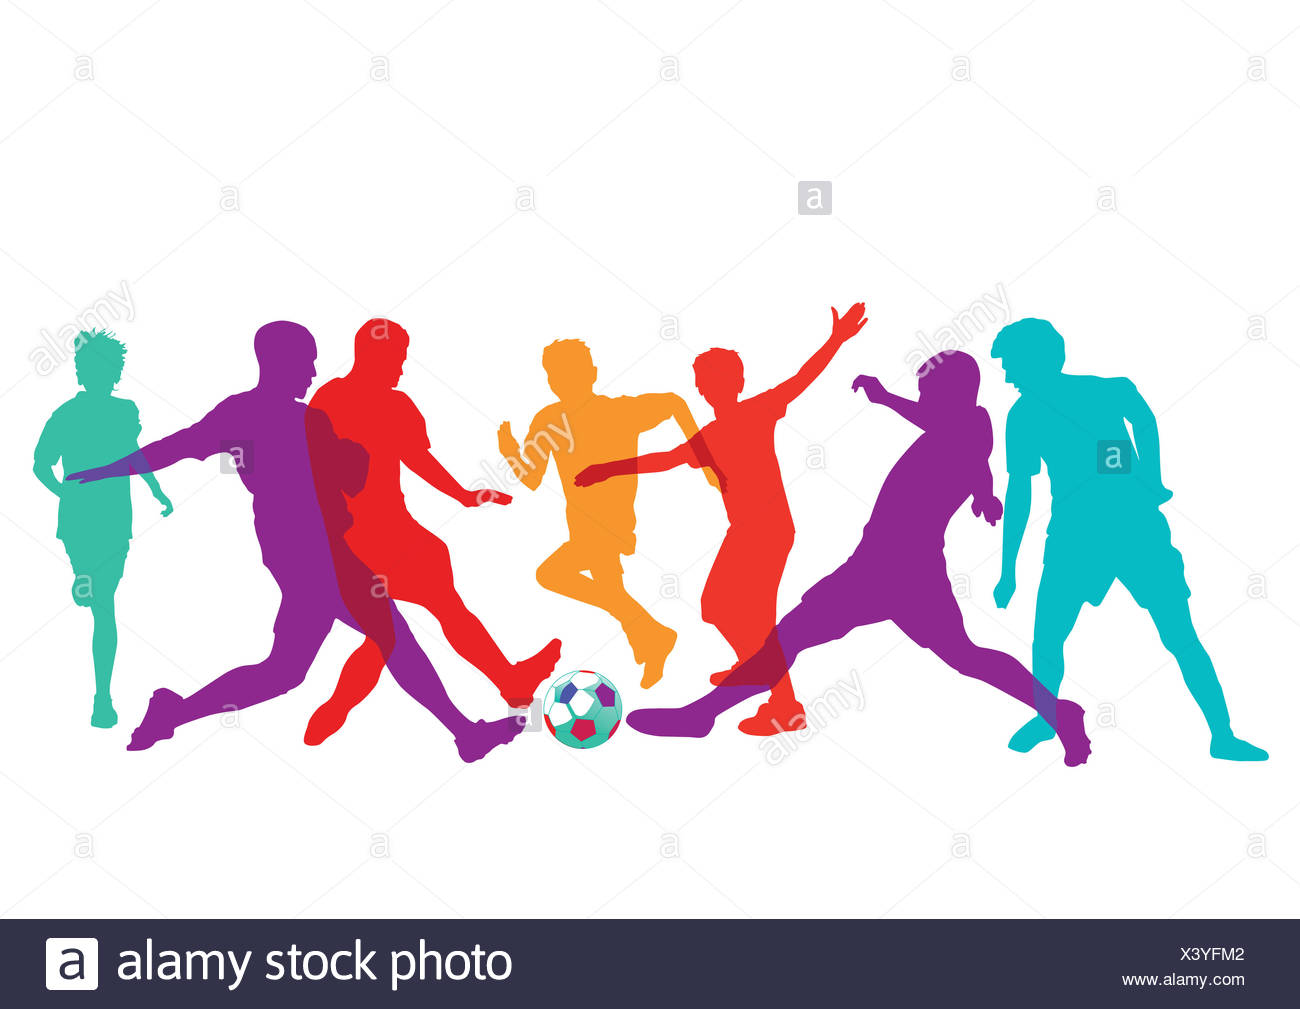 Football players on the field - Stock Image